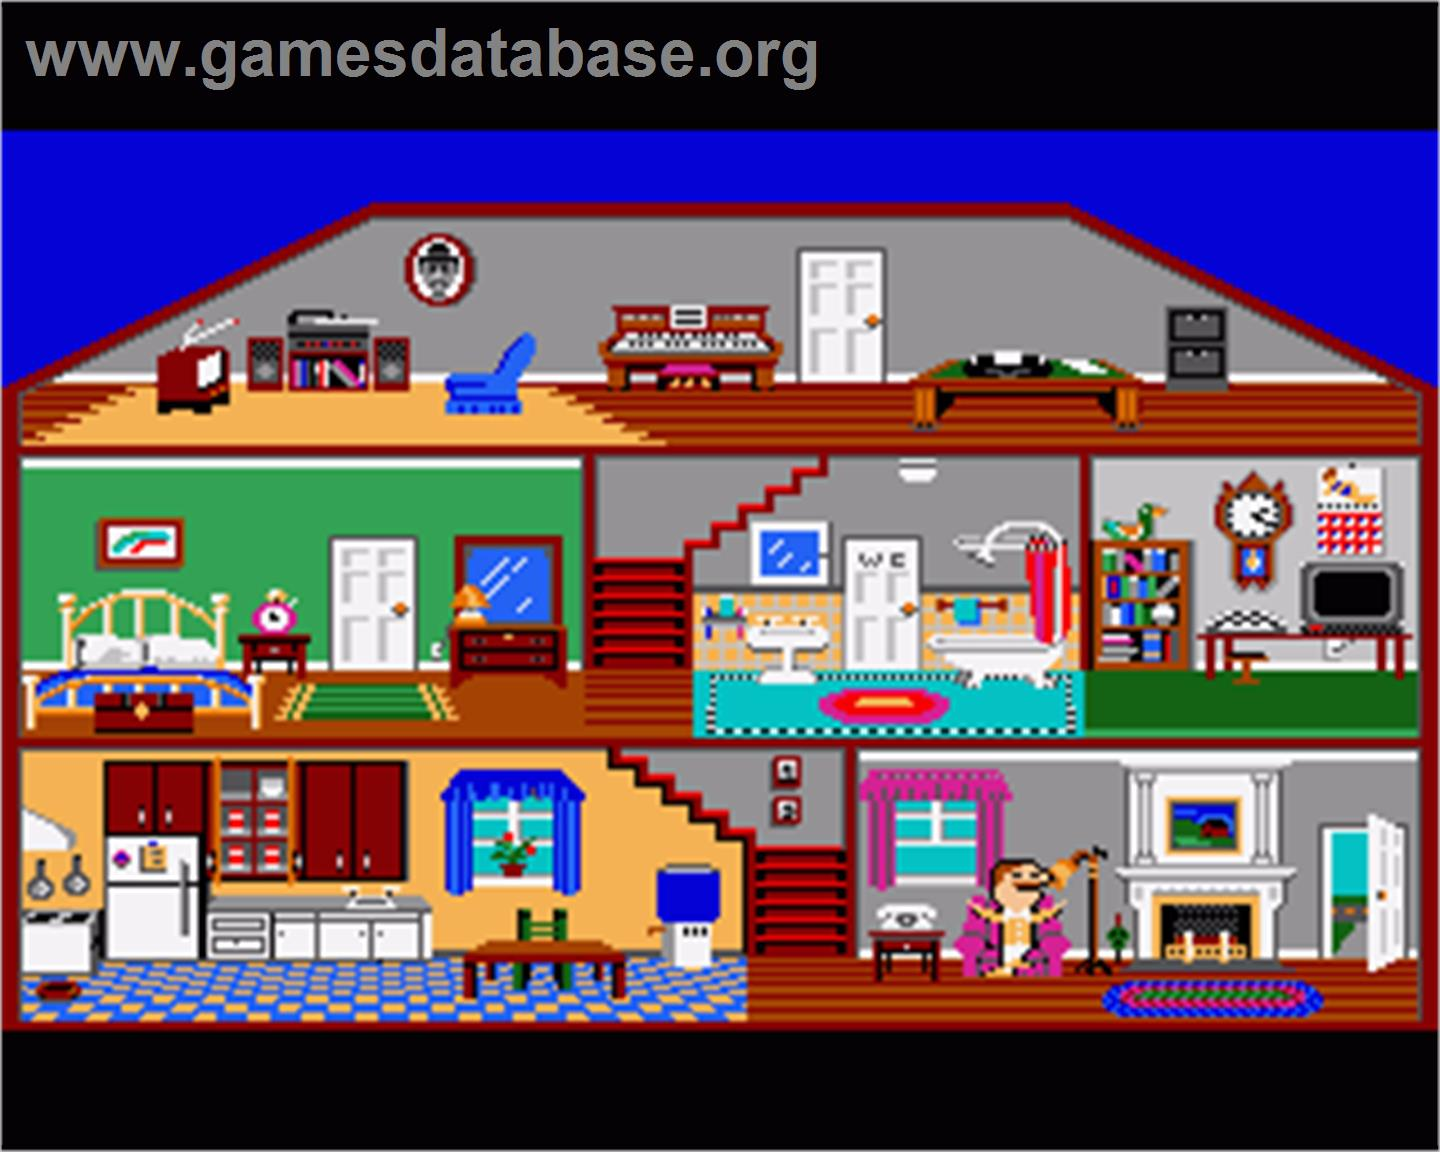 Little computer people commodore amiga games database for Food bar games free online